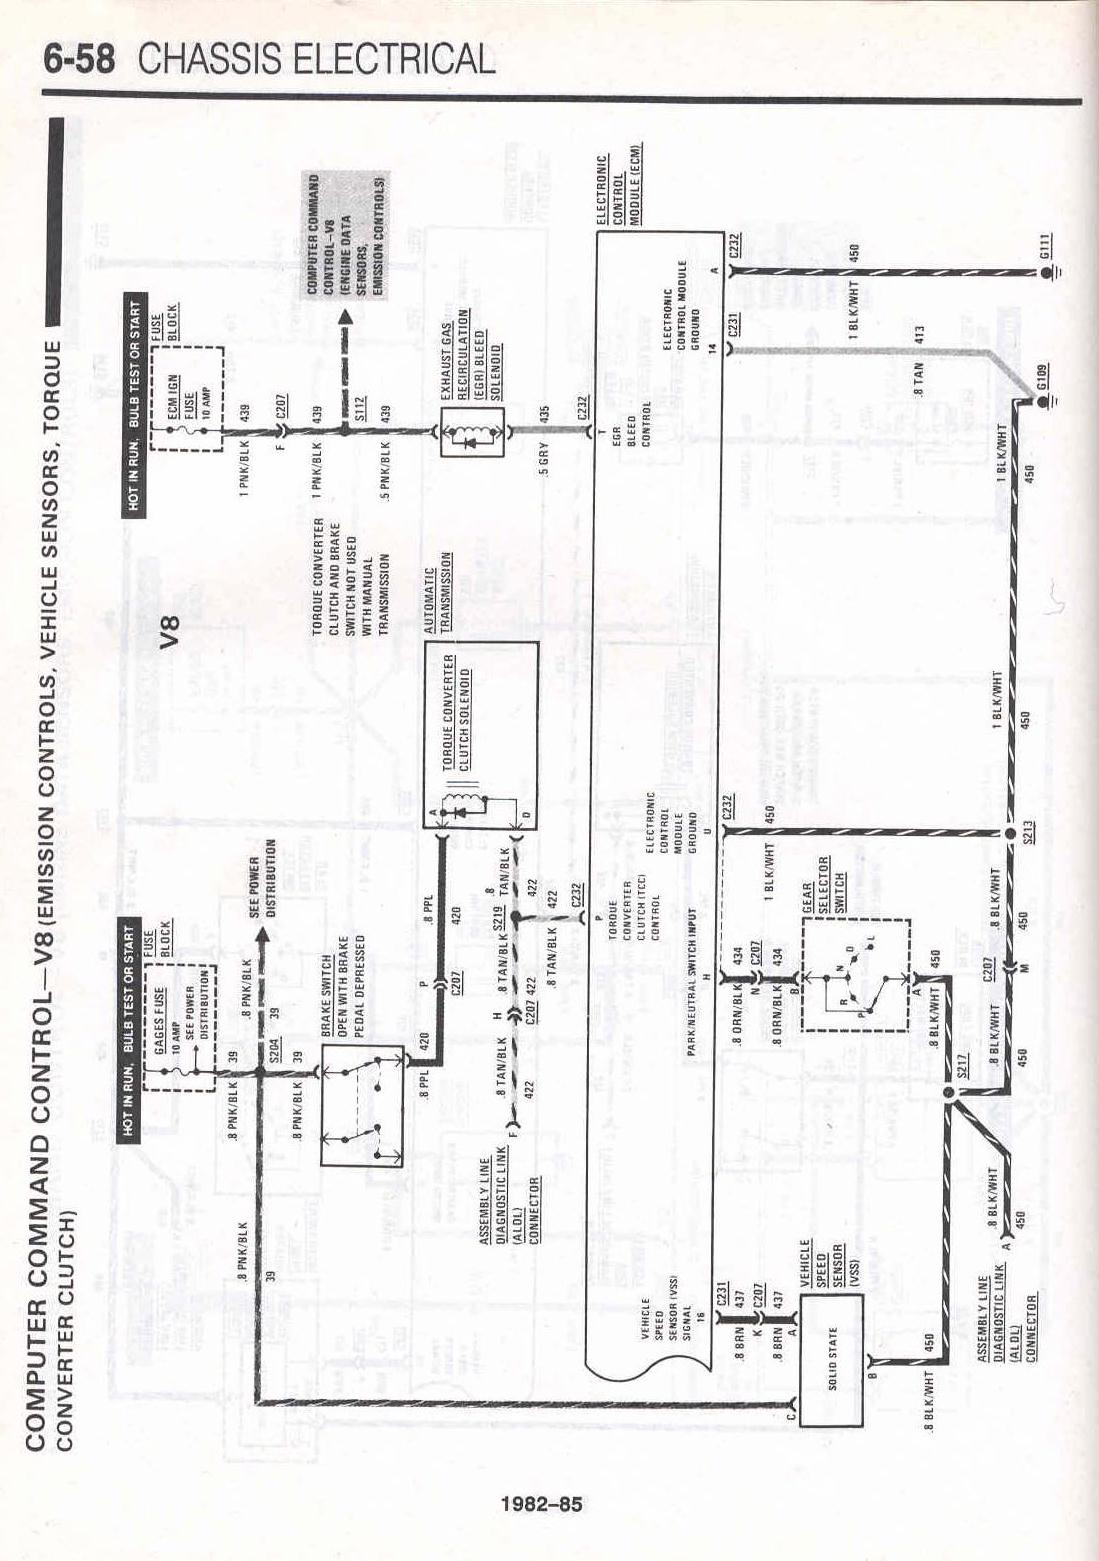 international 6 0 engine diagram icp sensor location maxxforce within diagram wiring and engine | indexnewspaper.com